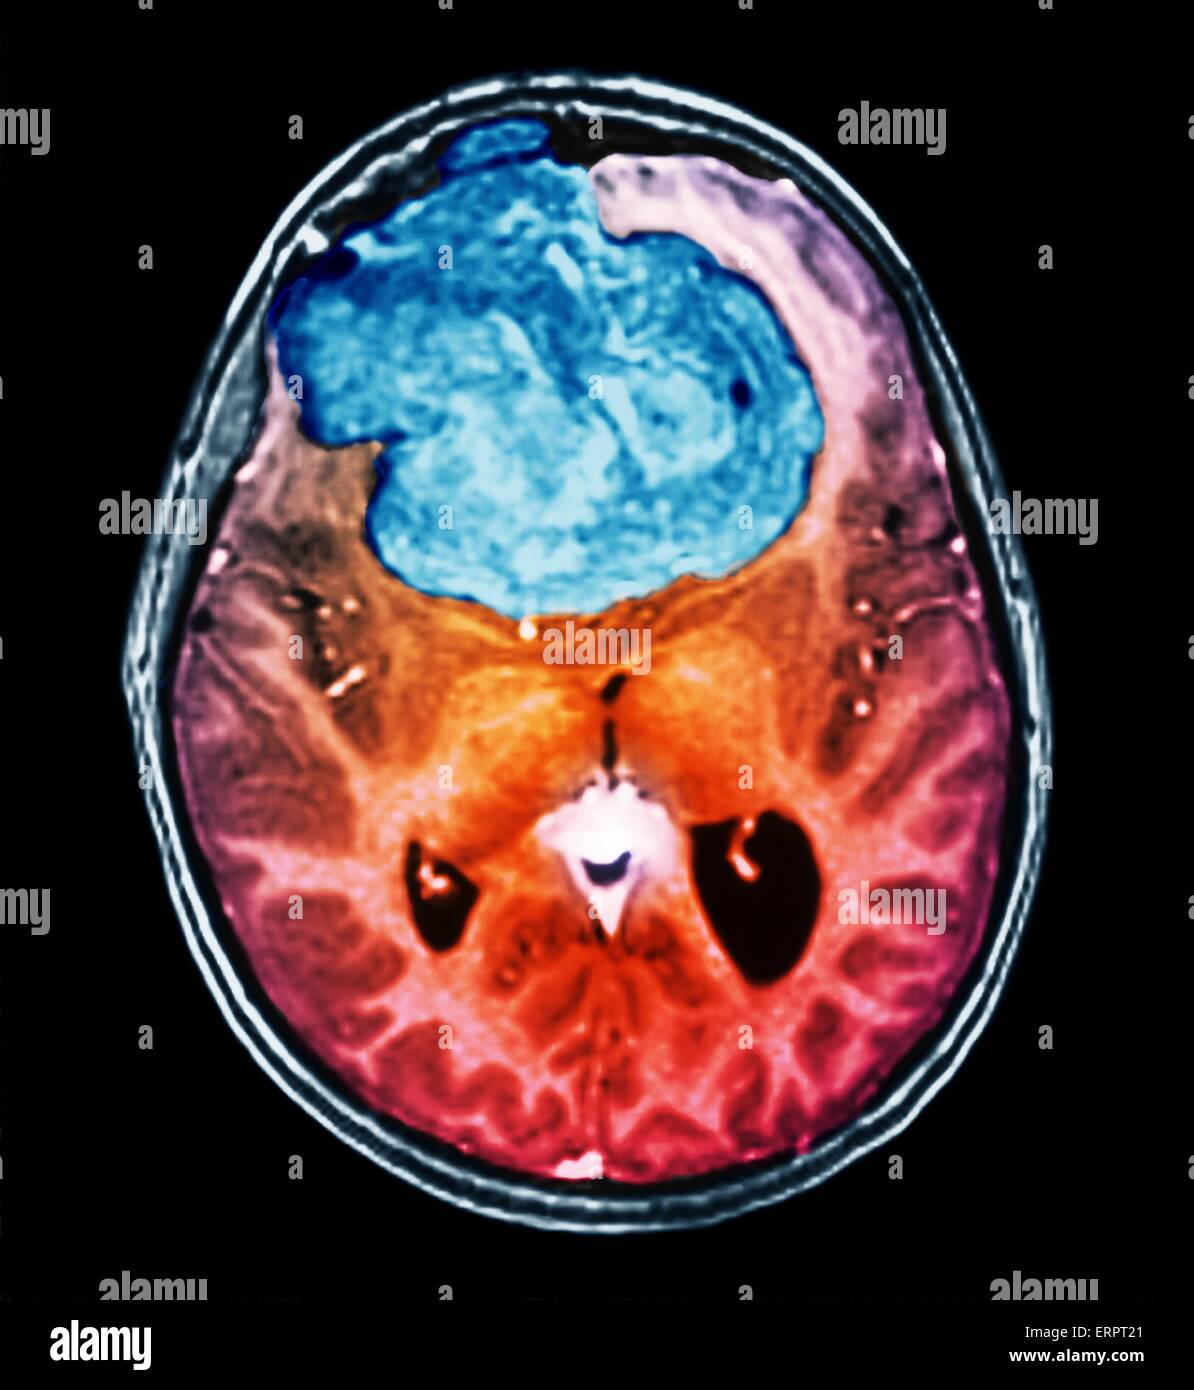 Benign brain tumour. Coloured computed tomography (CT) scan of the brain of a 25 year old patient with a meningioma - Stock Image